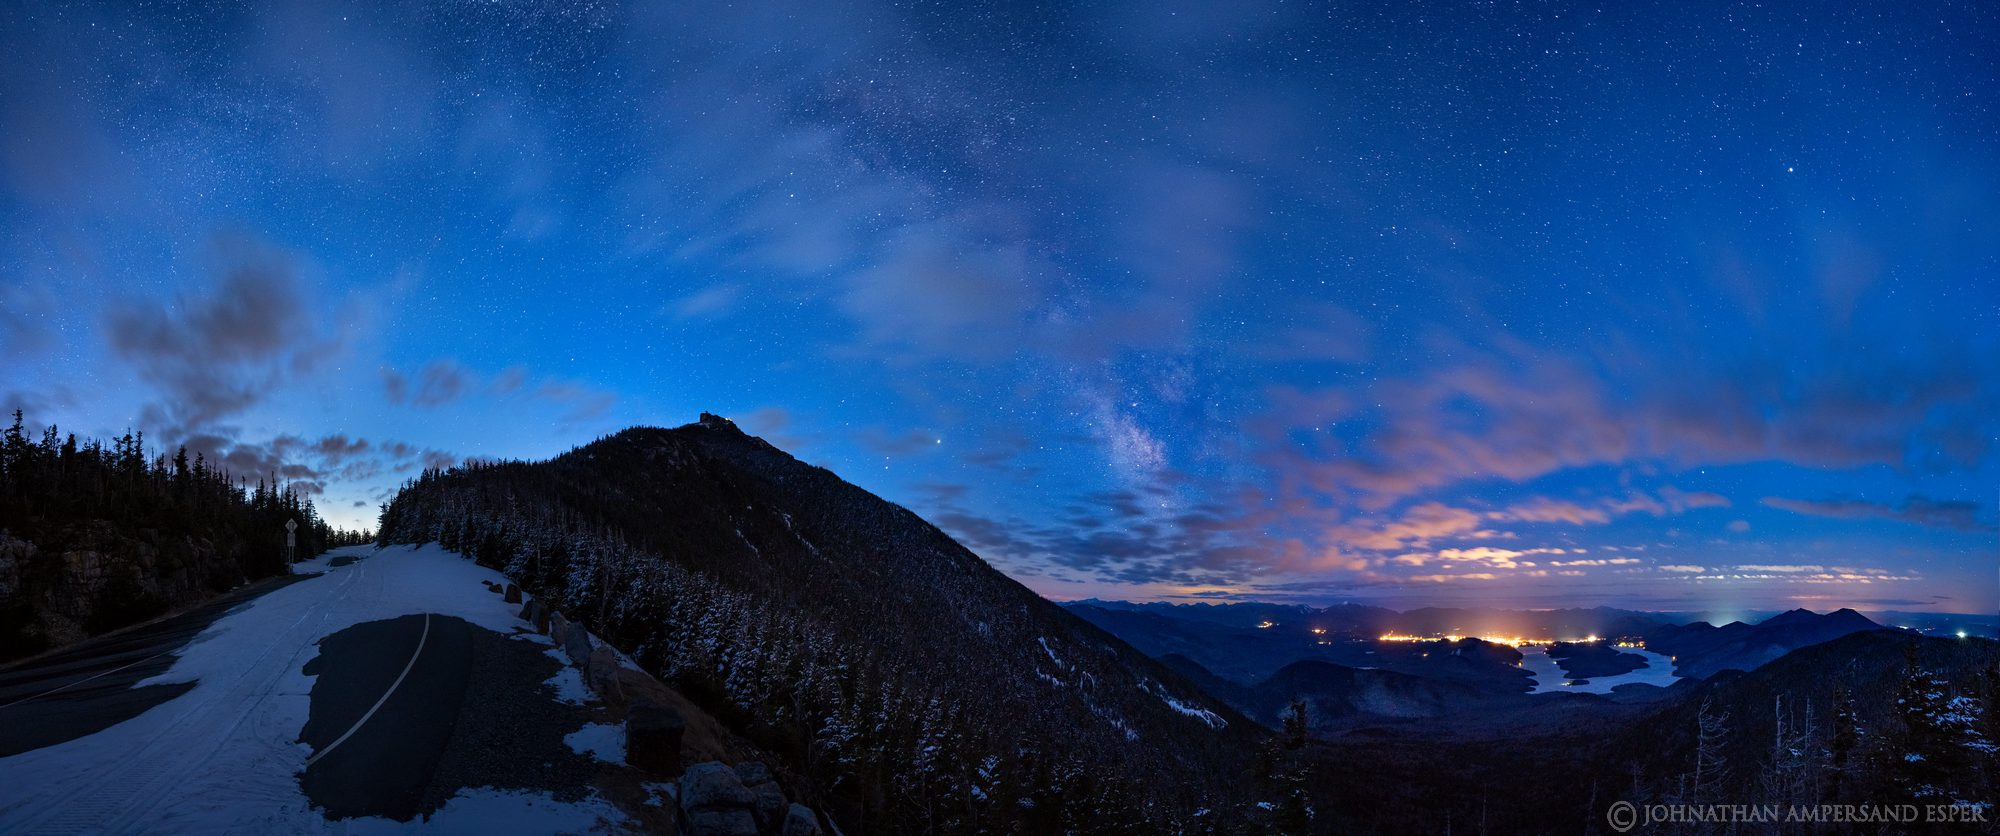 Whiteface Mt,Lake Placid,night,sky,stars,Milky Way,Whiteface Memorial Highway,winter,village of Lake Placid,panorama,, photo